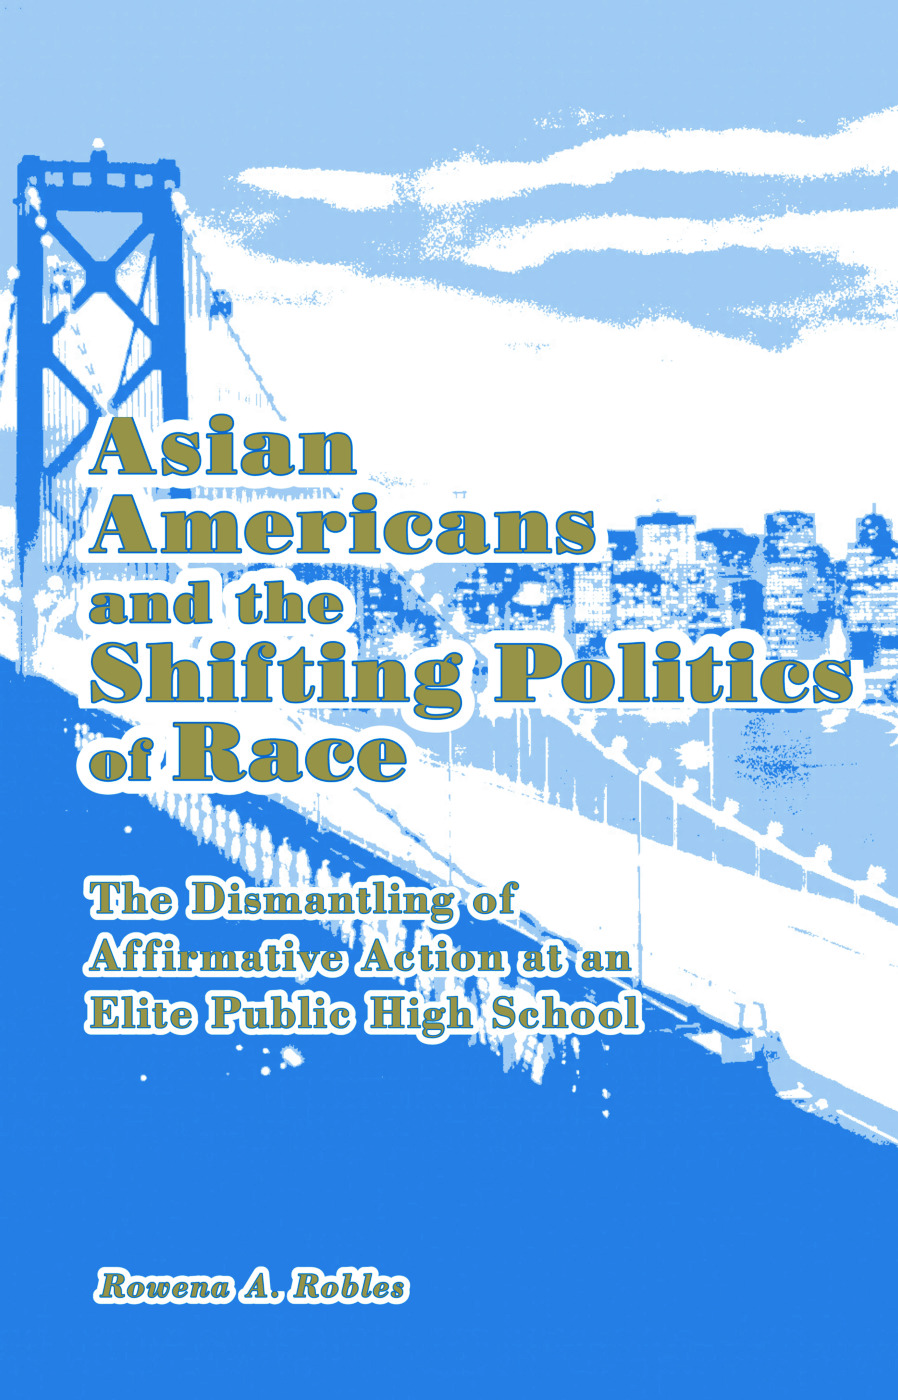 Asian Americans and the Shifting Politics of Race: The Dismantling of Affirmative Action at an Elite Public High School book cover